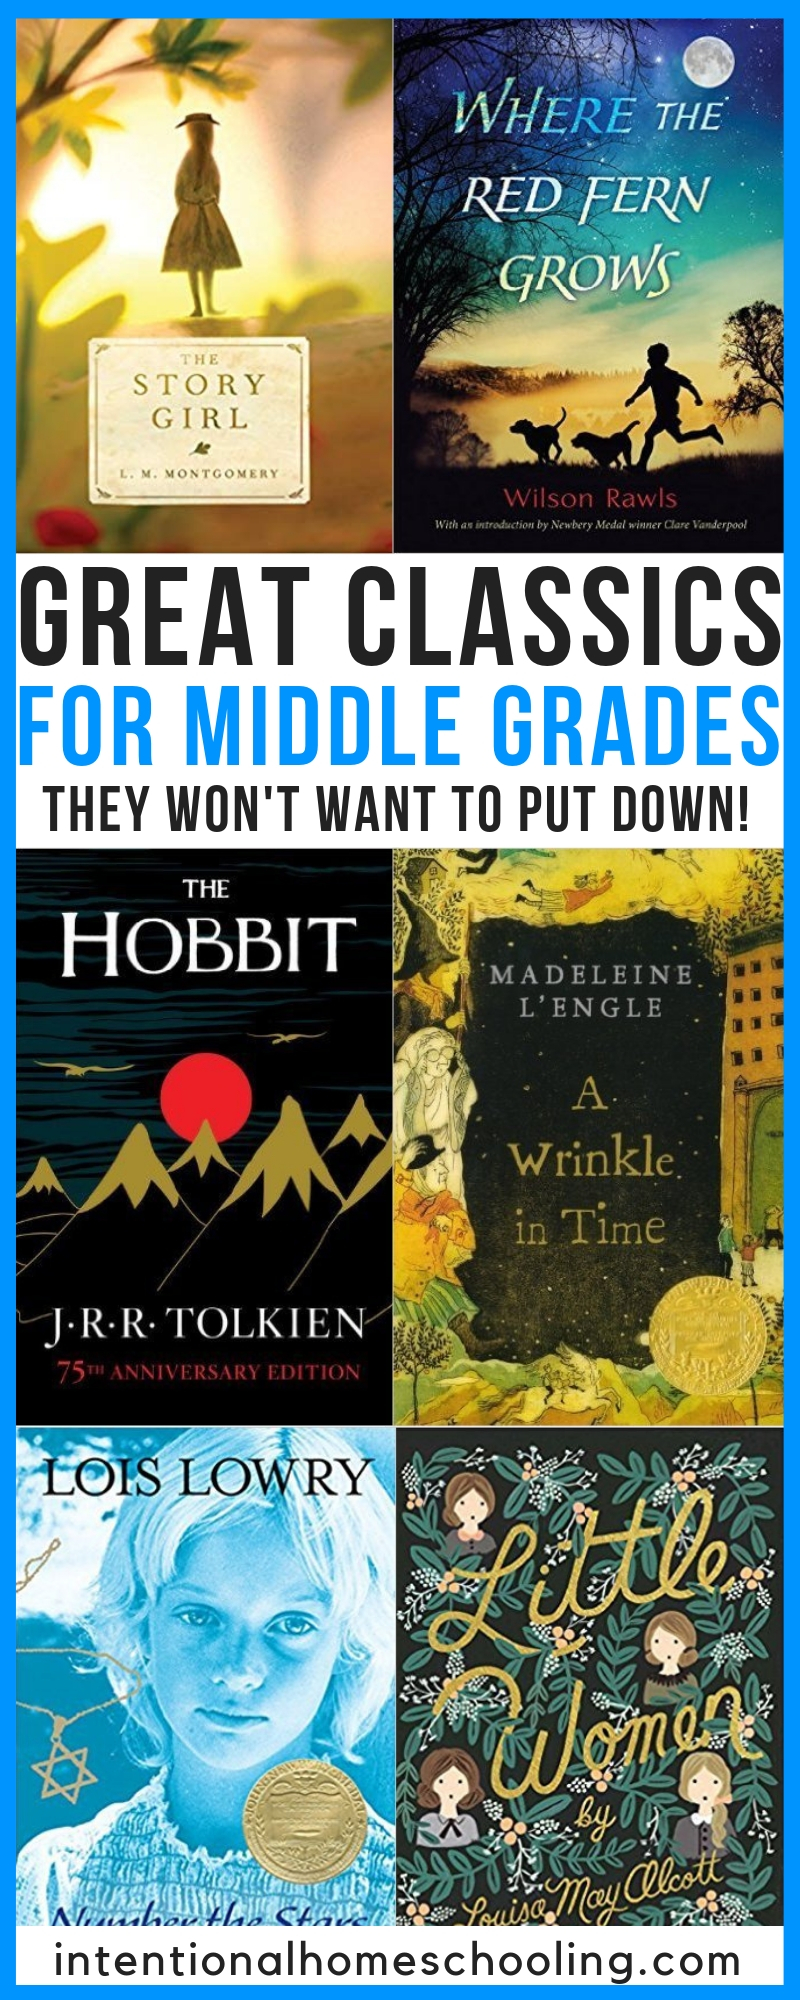 A great list of classics for middle school - grades 5, 6, 7 and 8!